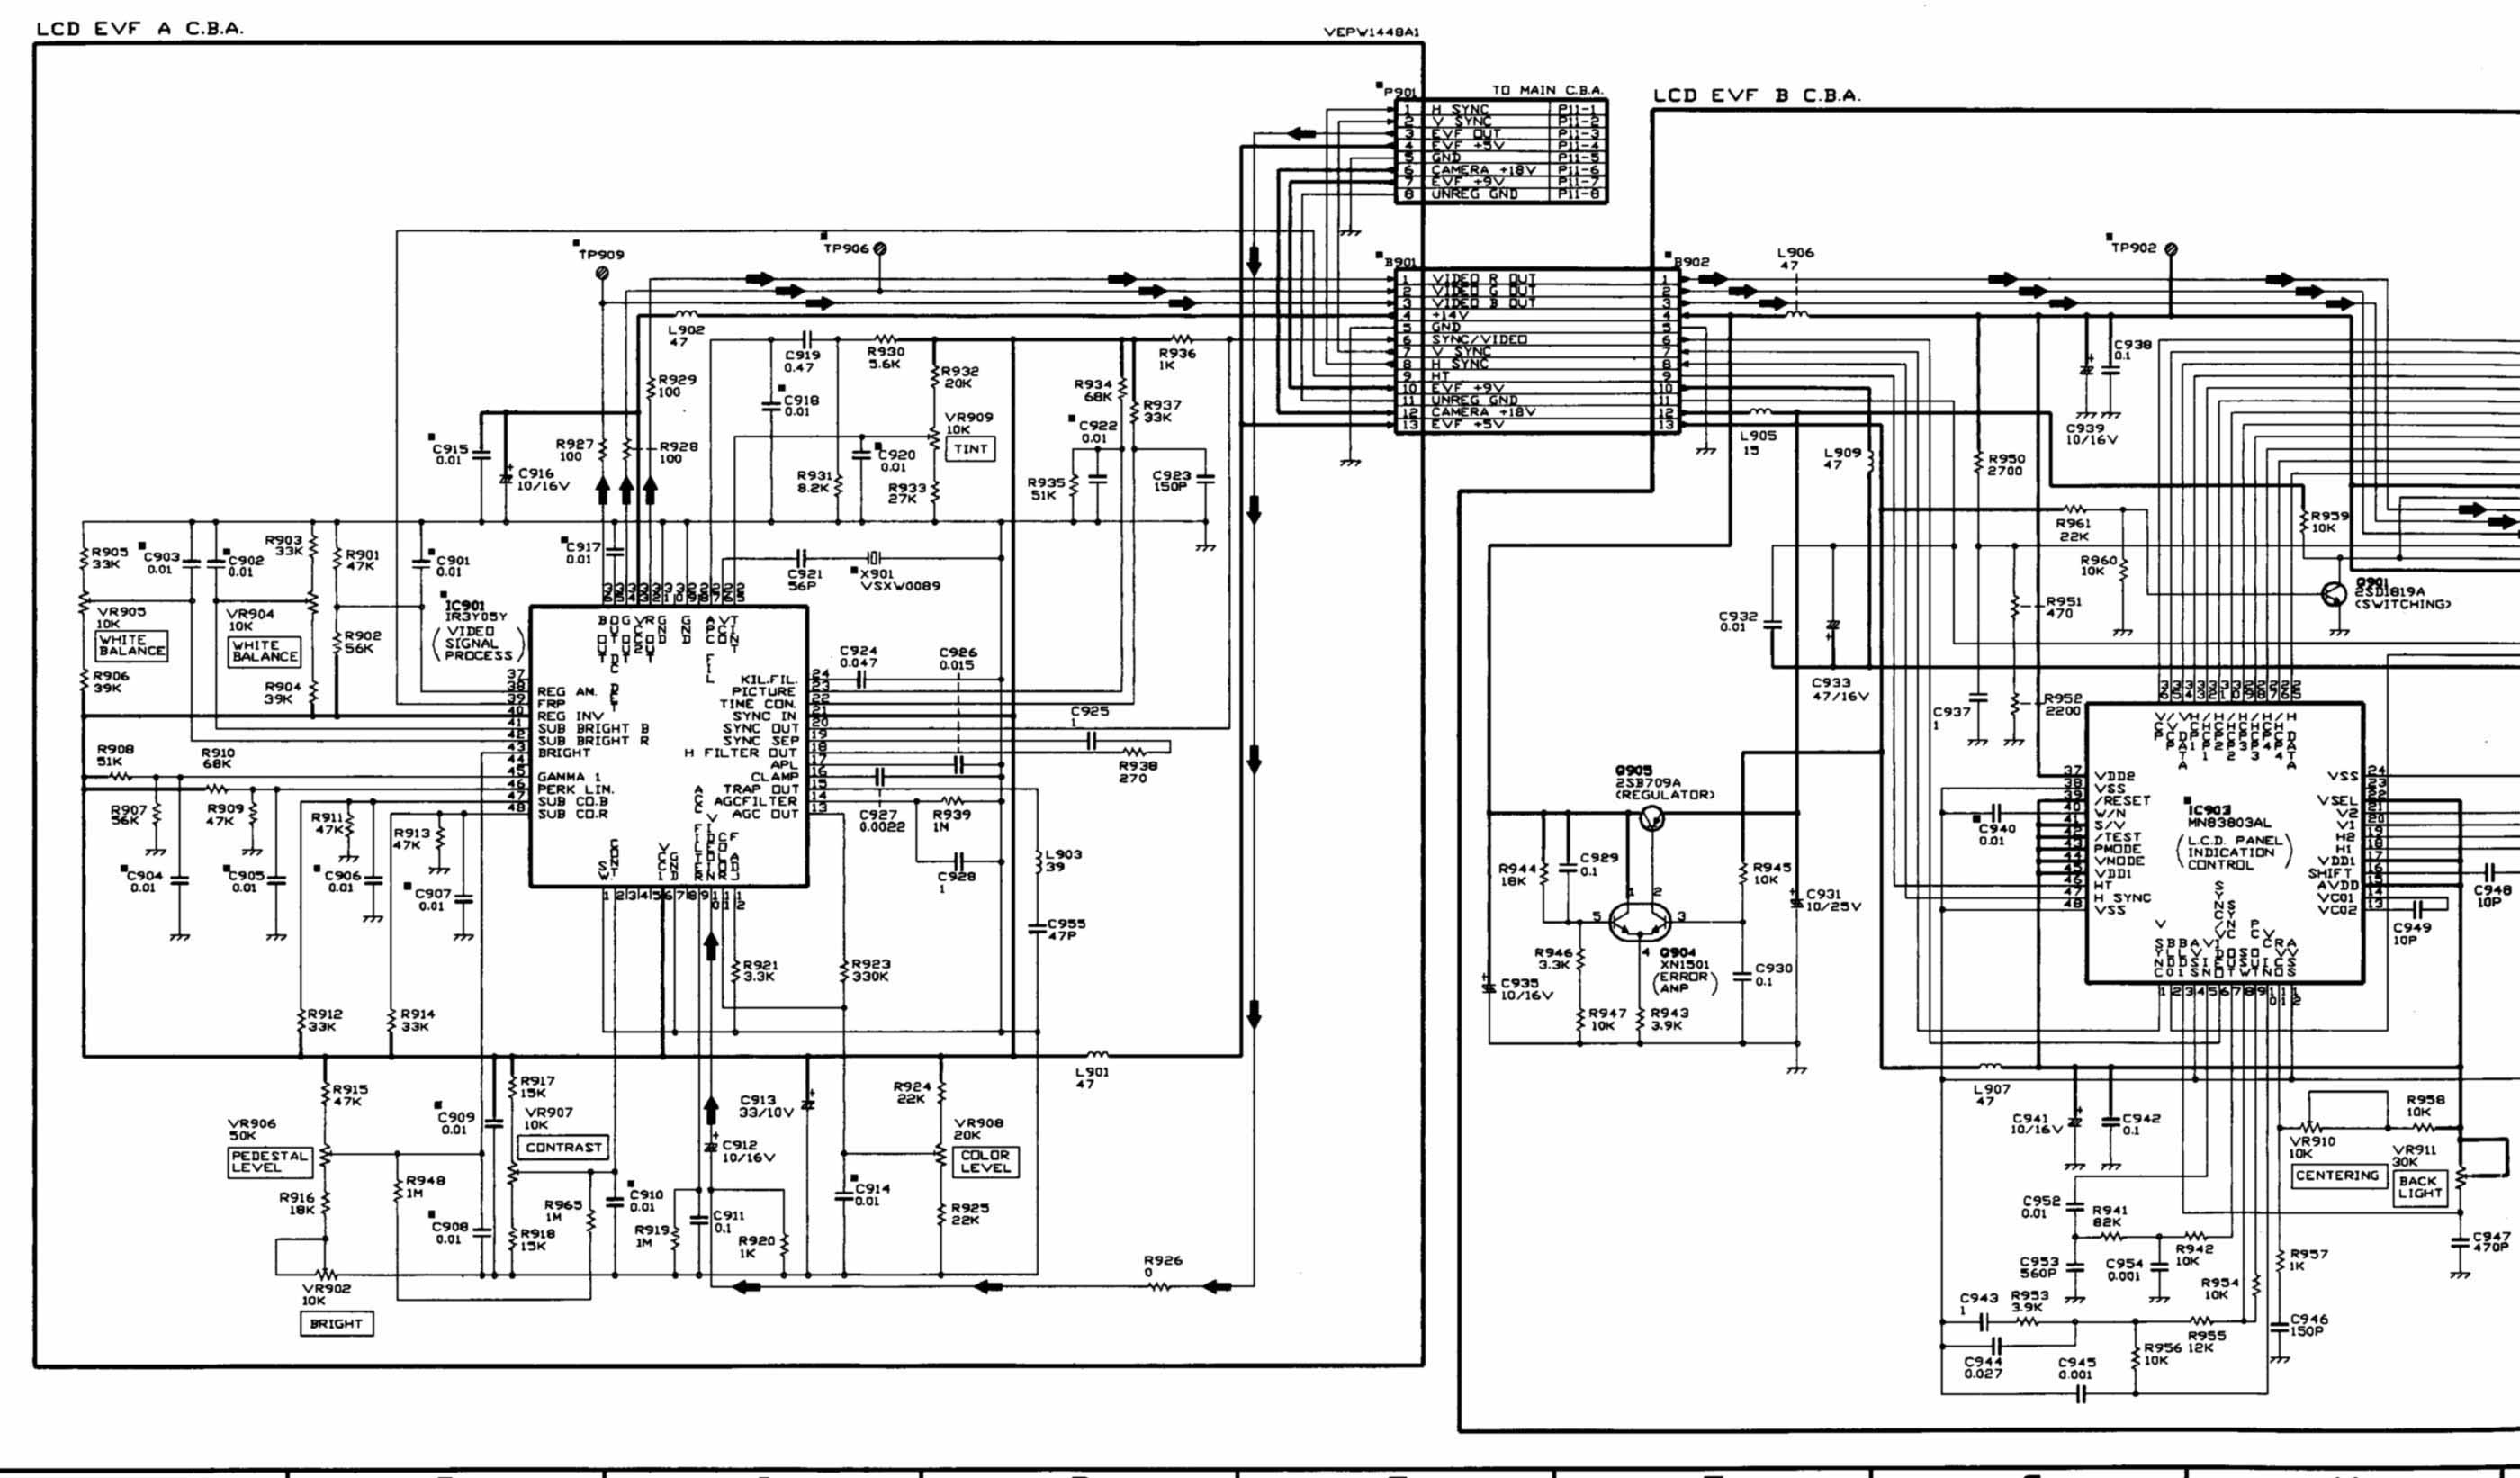 Headlight Wiring Diagram 2005 W4500 Gmc Isuzu FTR Diagram